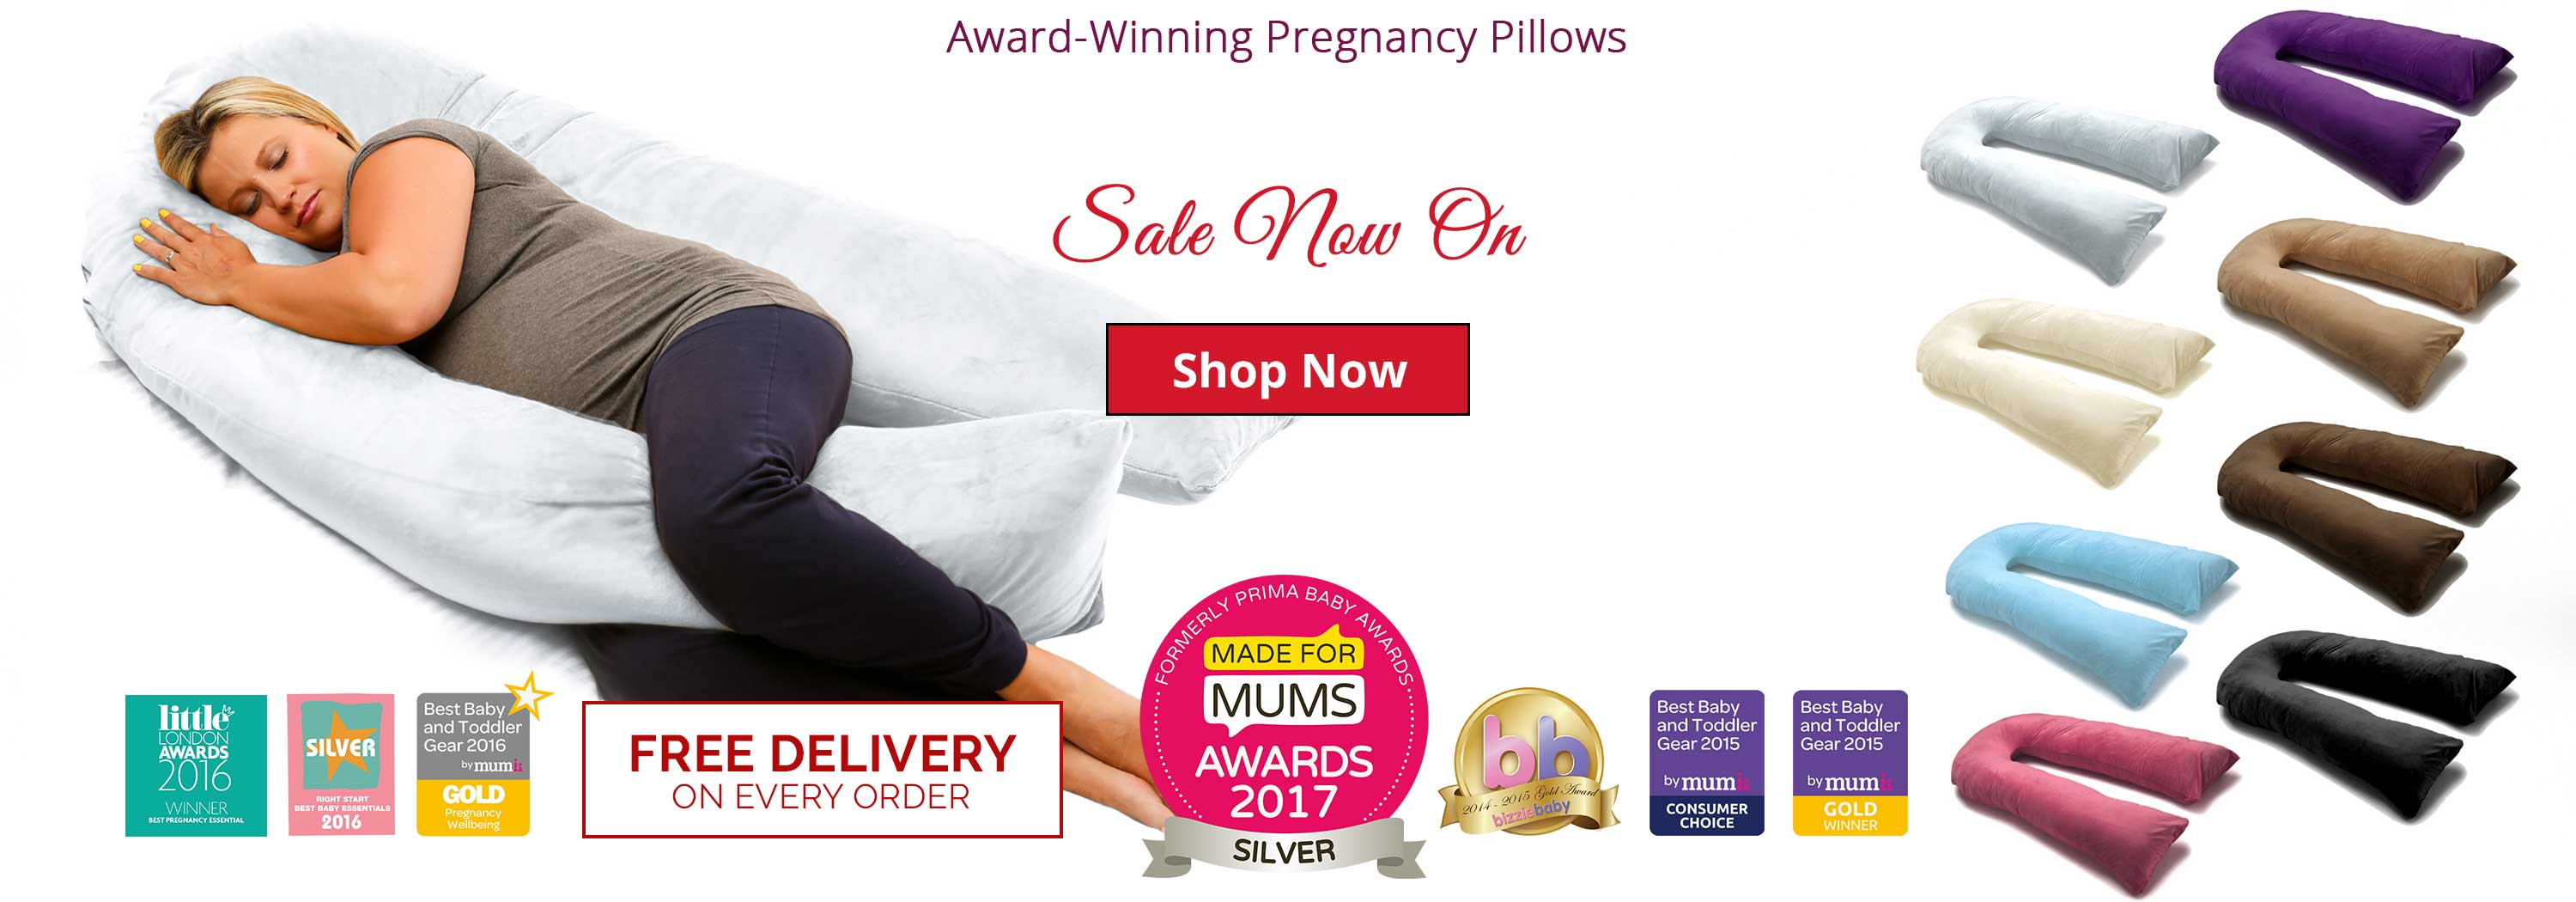 Introducing our new pregnancy pillow colour, Silver